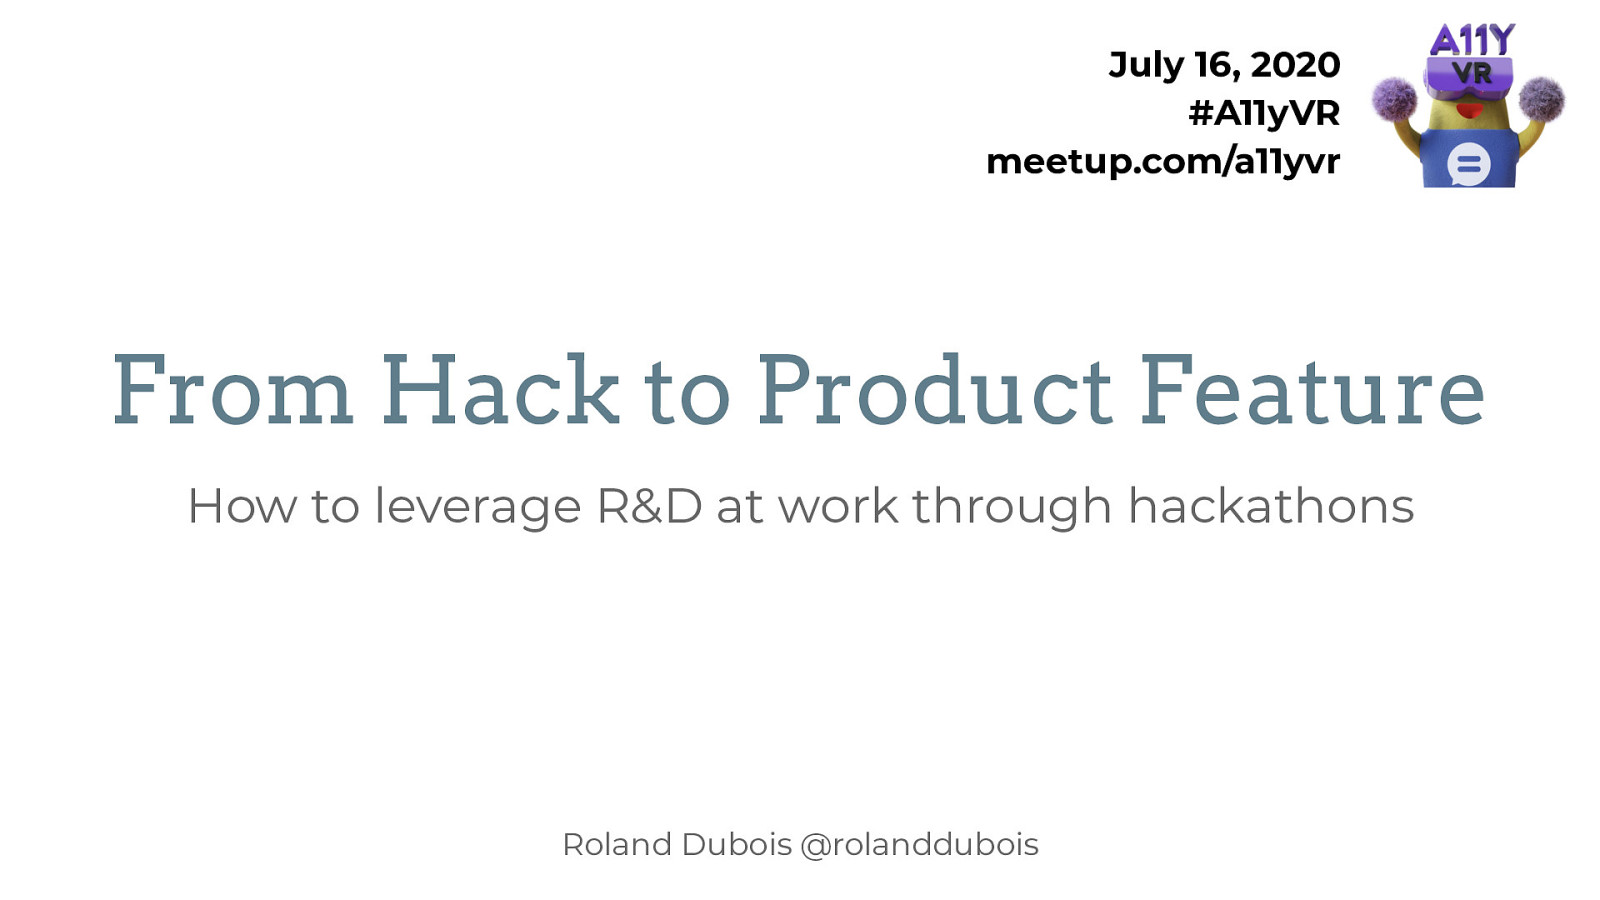 From Hack to Product Feature How to leverage R&D at work through hackathons